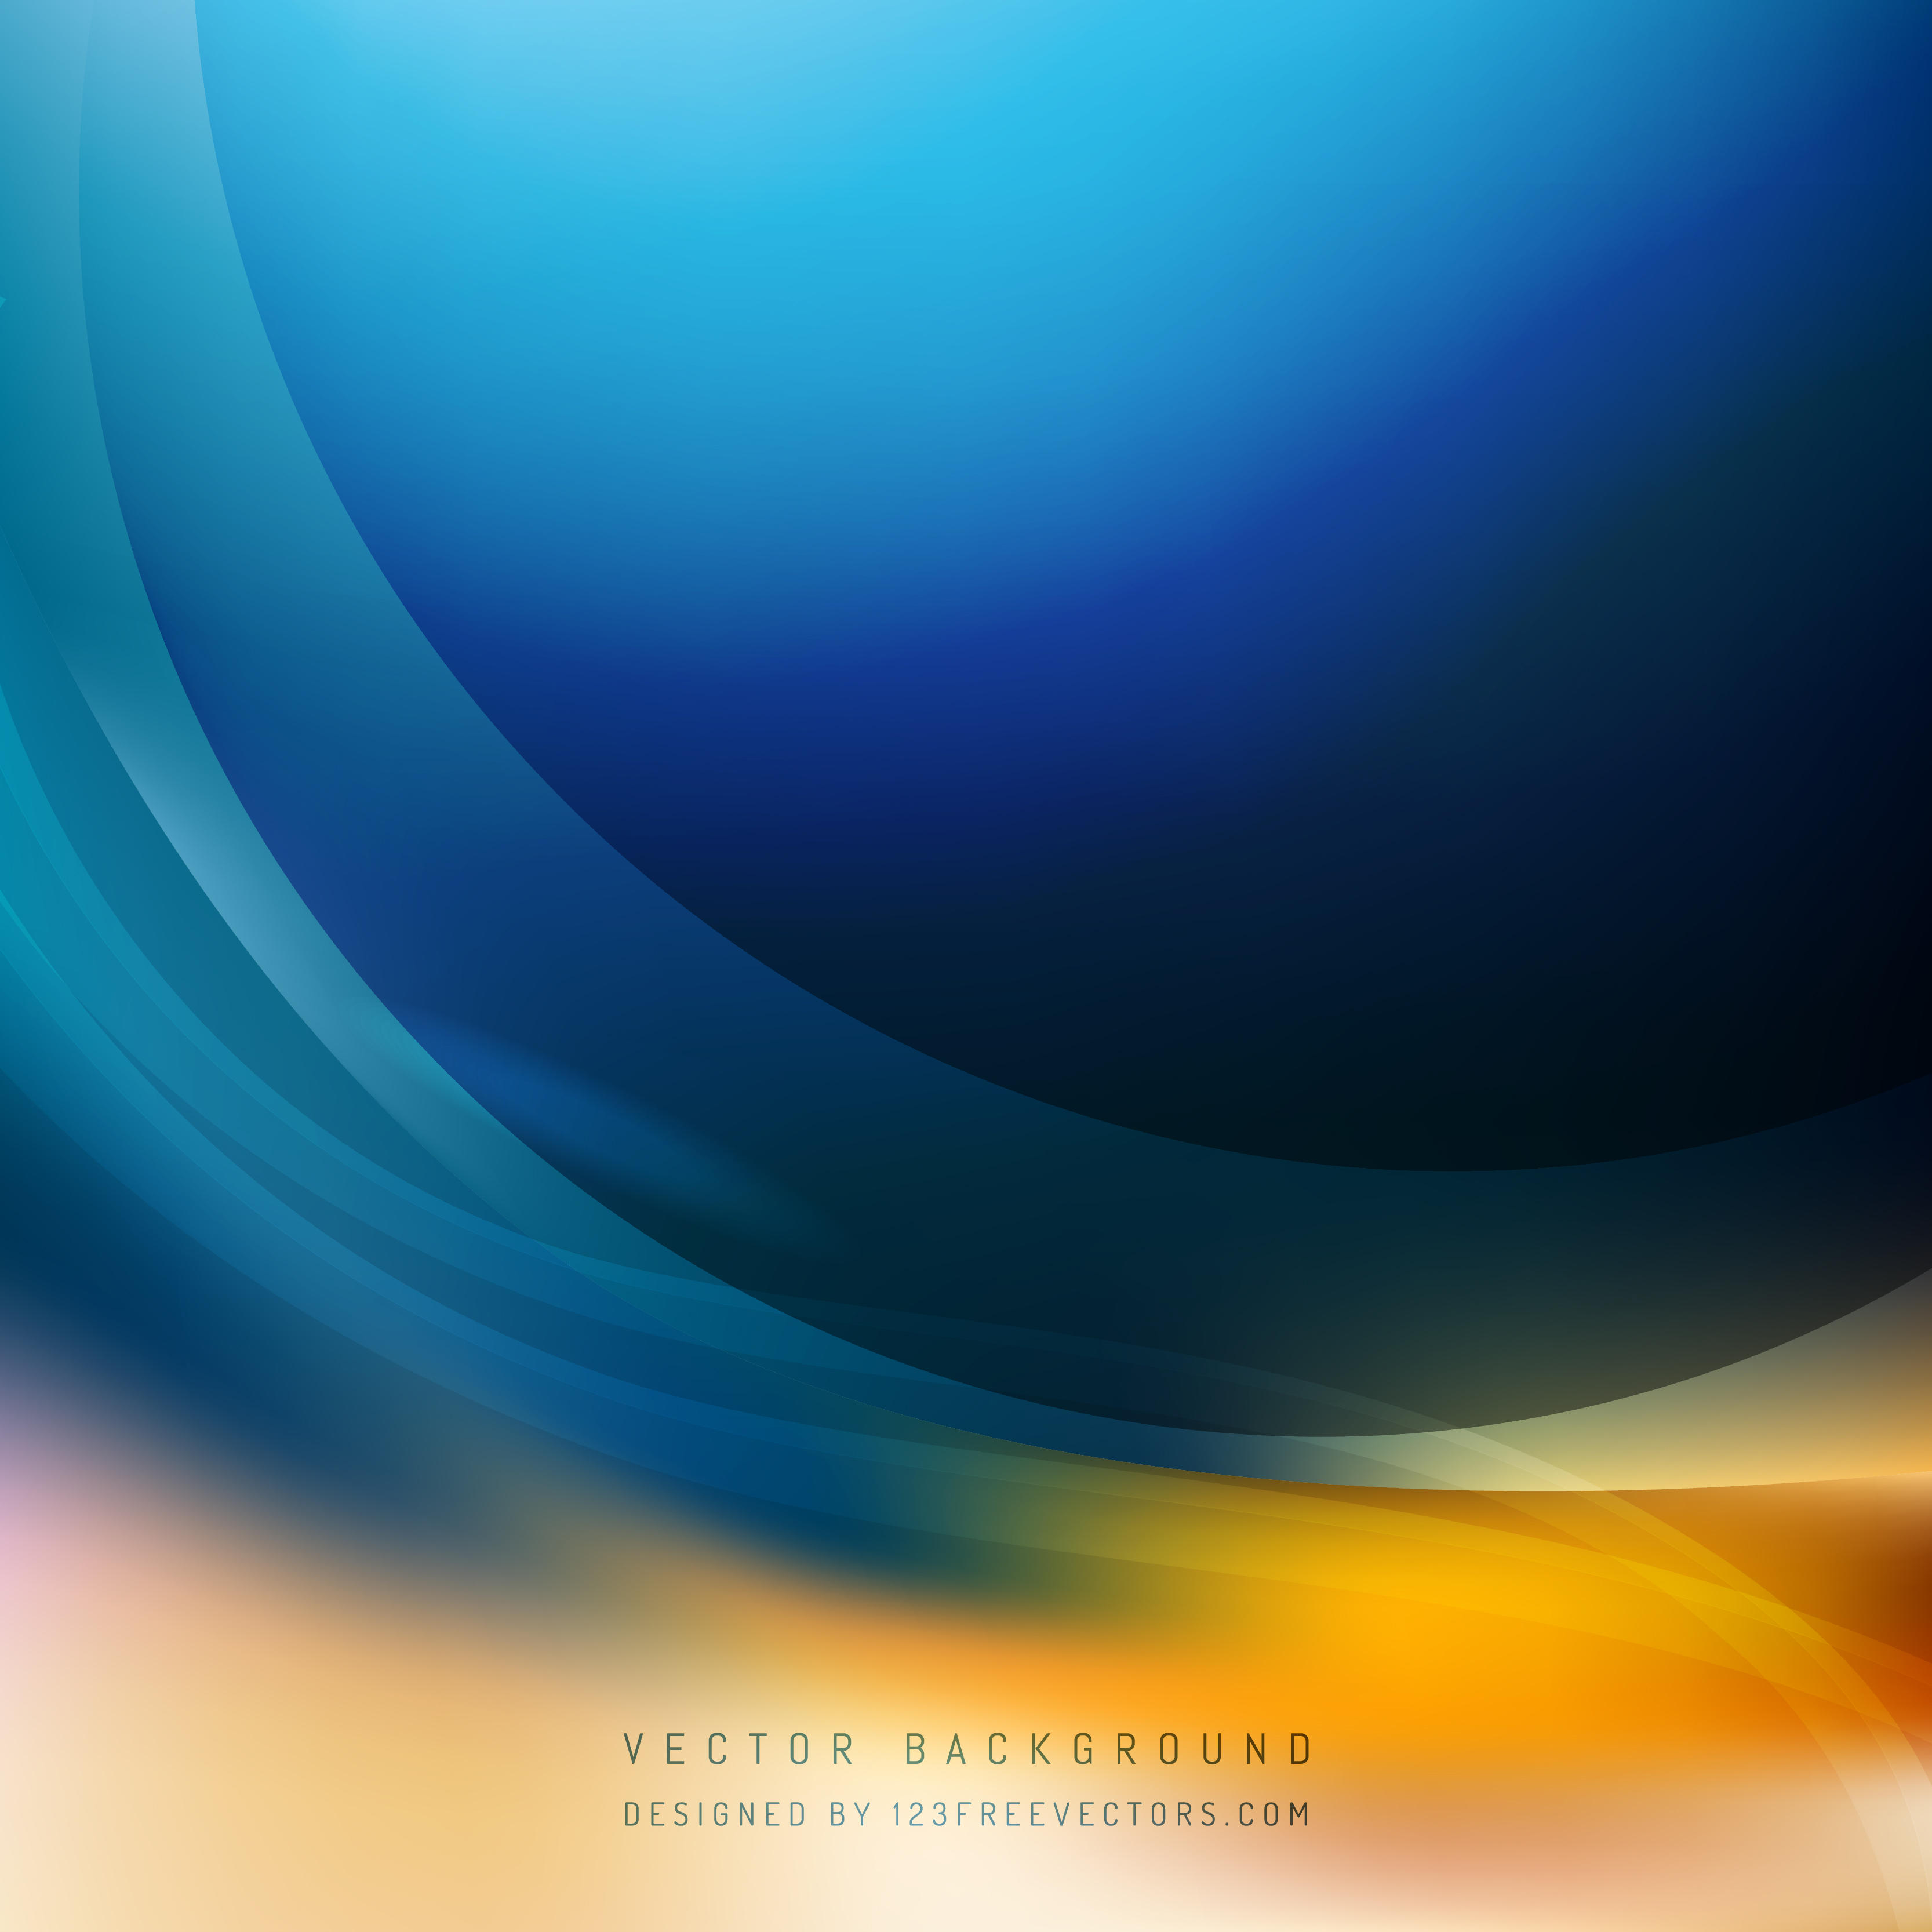 Abstract Blue Orange Wave Background Template